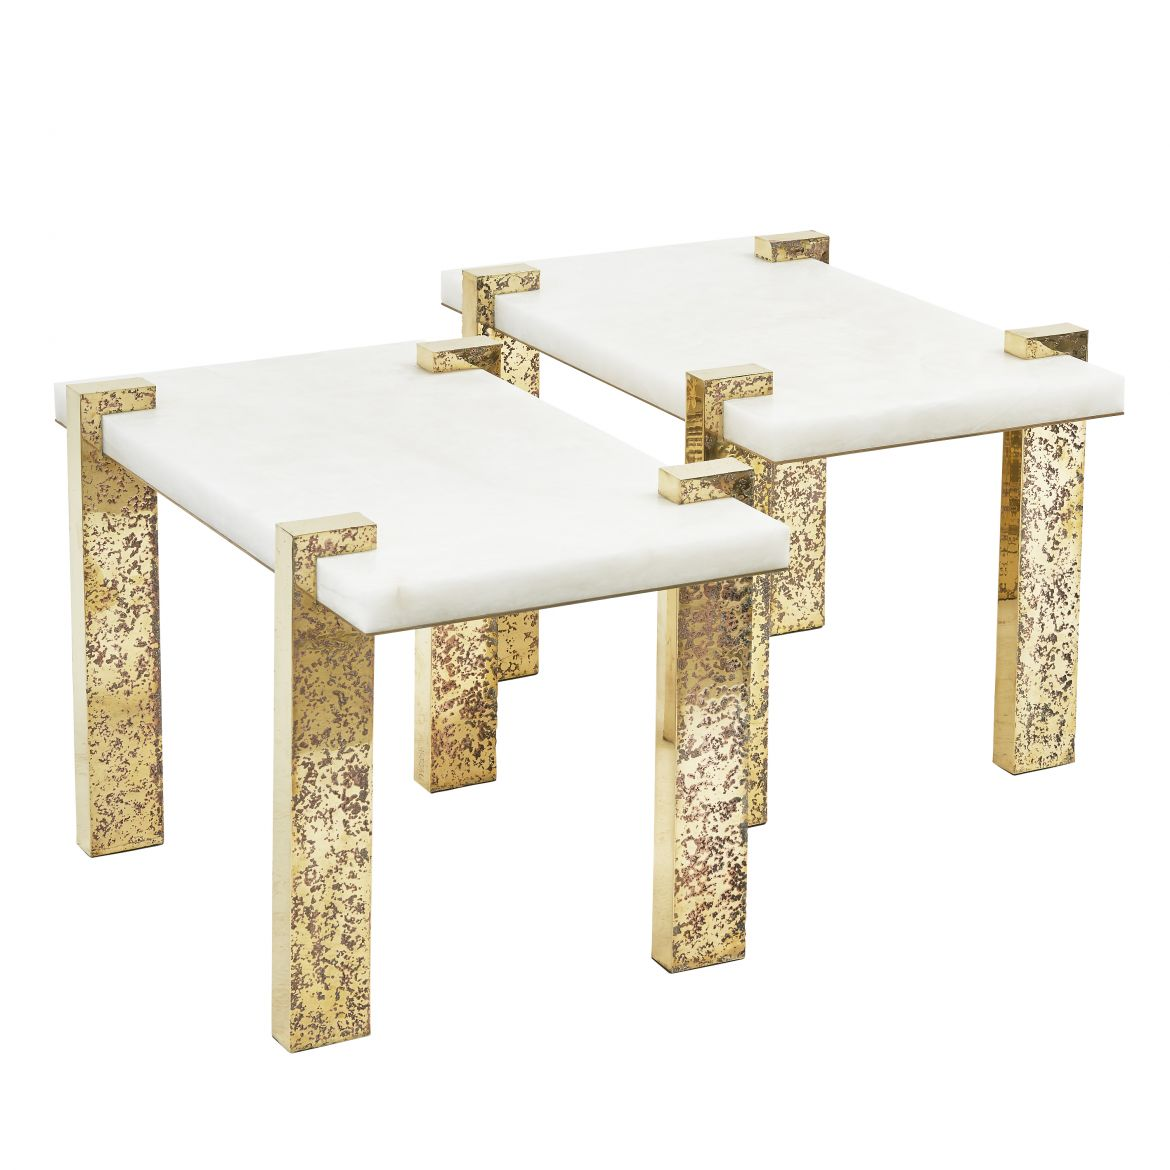 Alabaster tables by Arriau